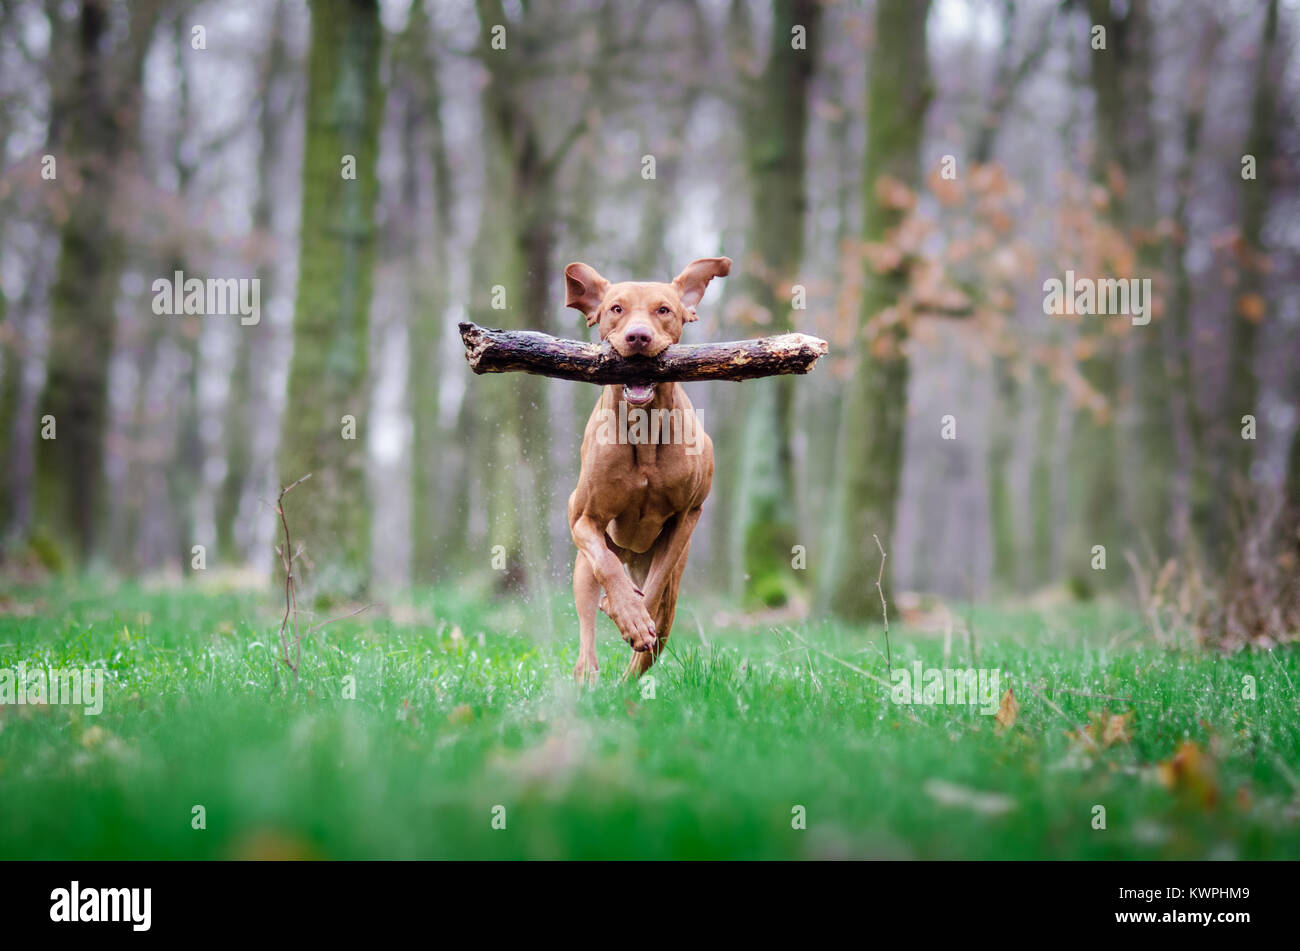 hungarian hound dog portrain in the middle of the forrest - Stock Image